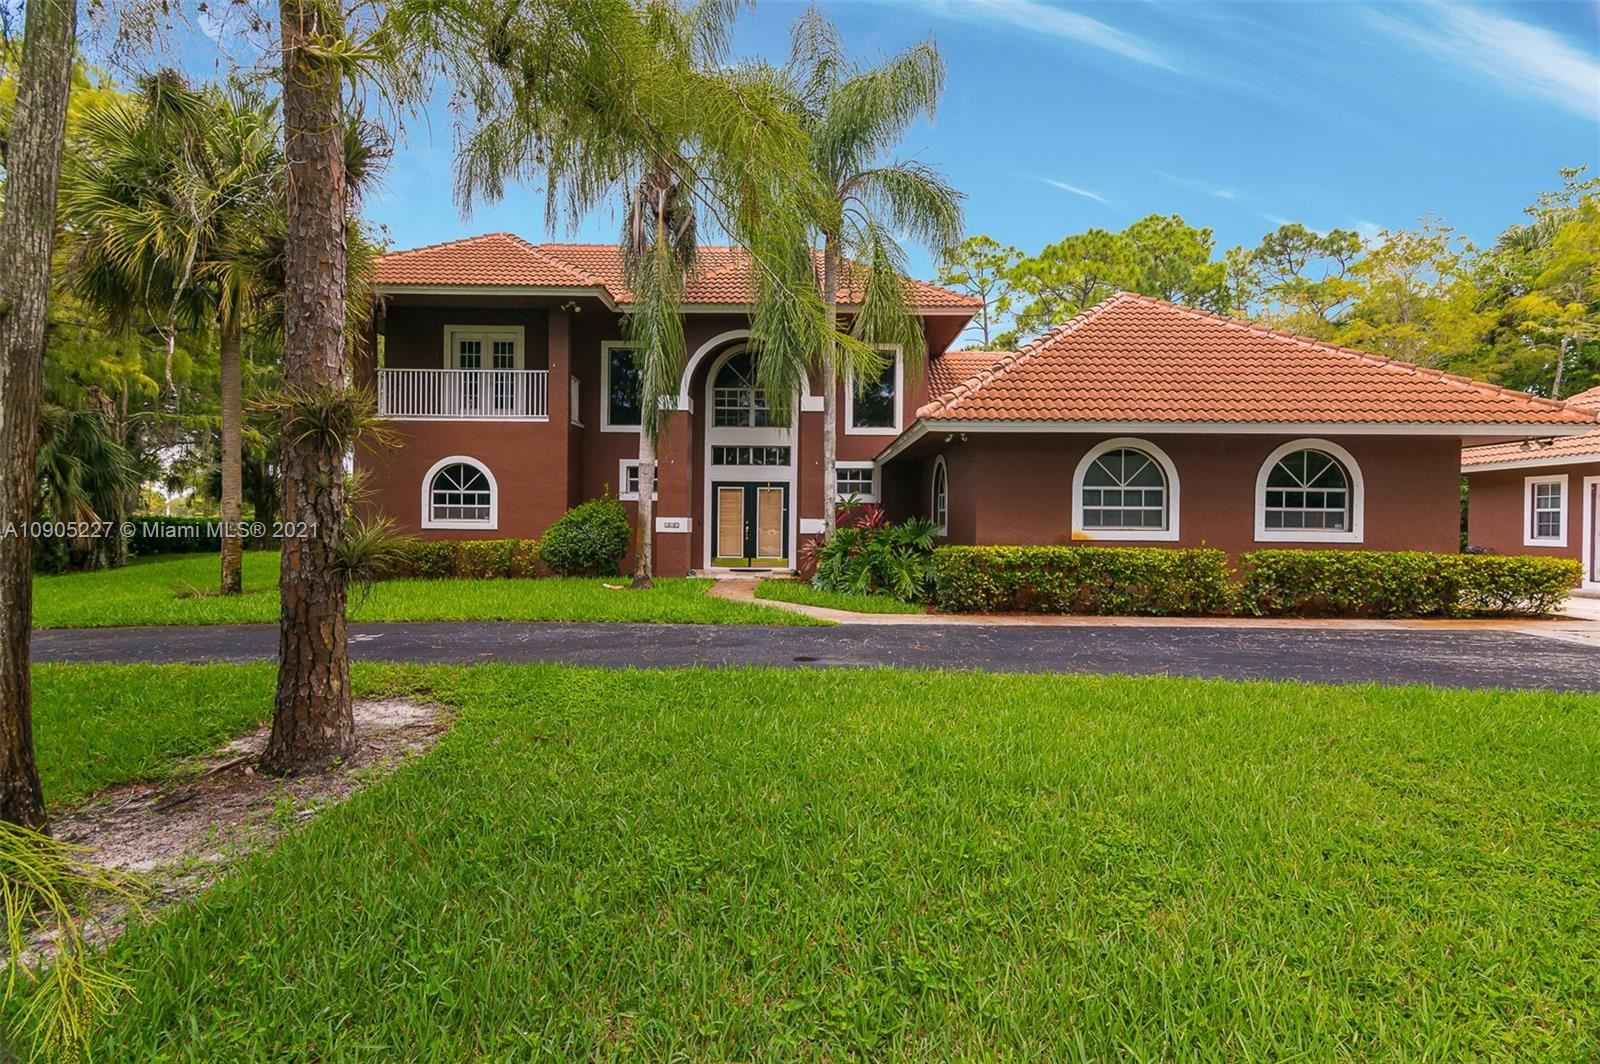 827 Squire Dr, Wellington, FL 33414 - #: A10905227